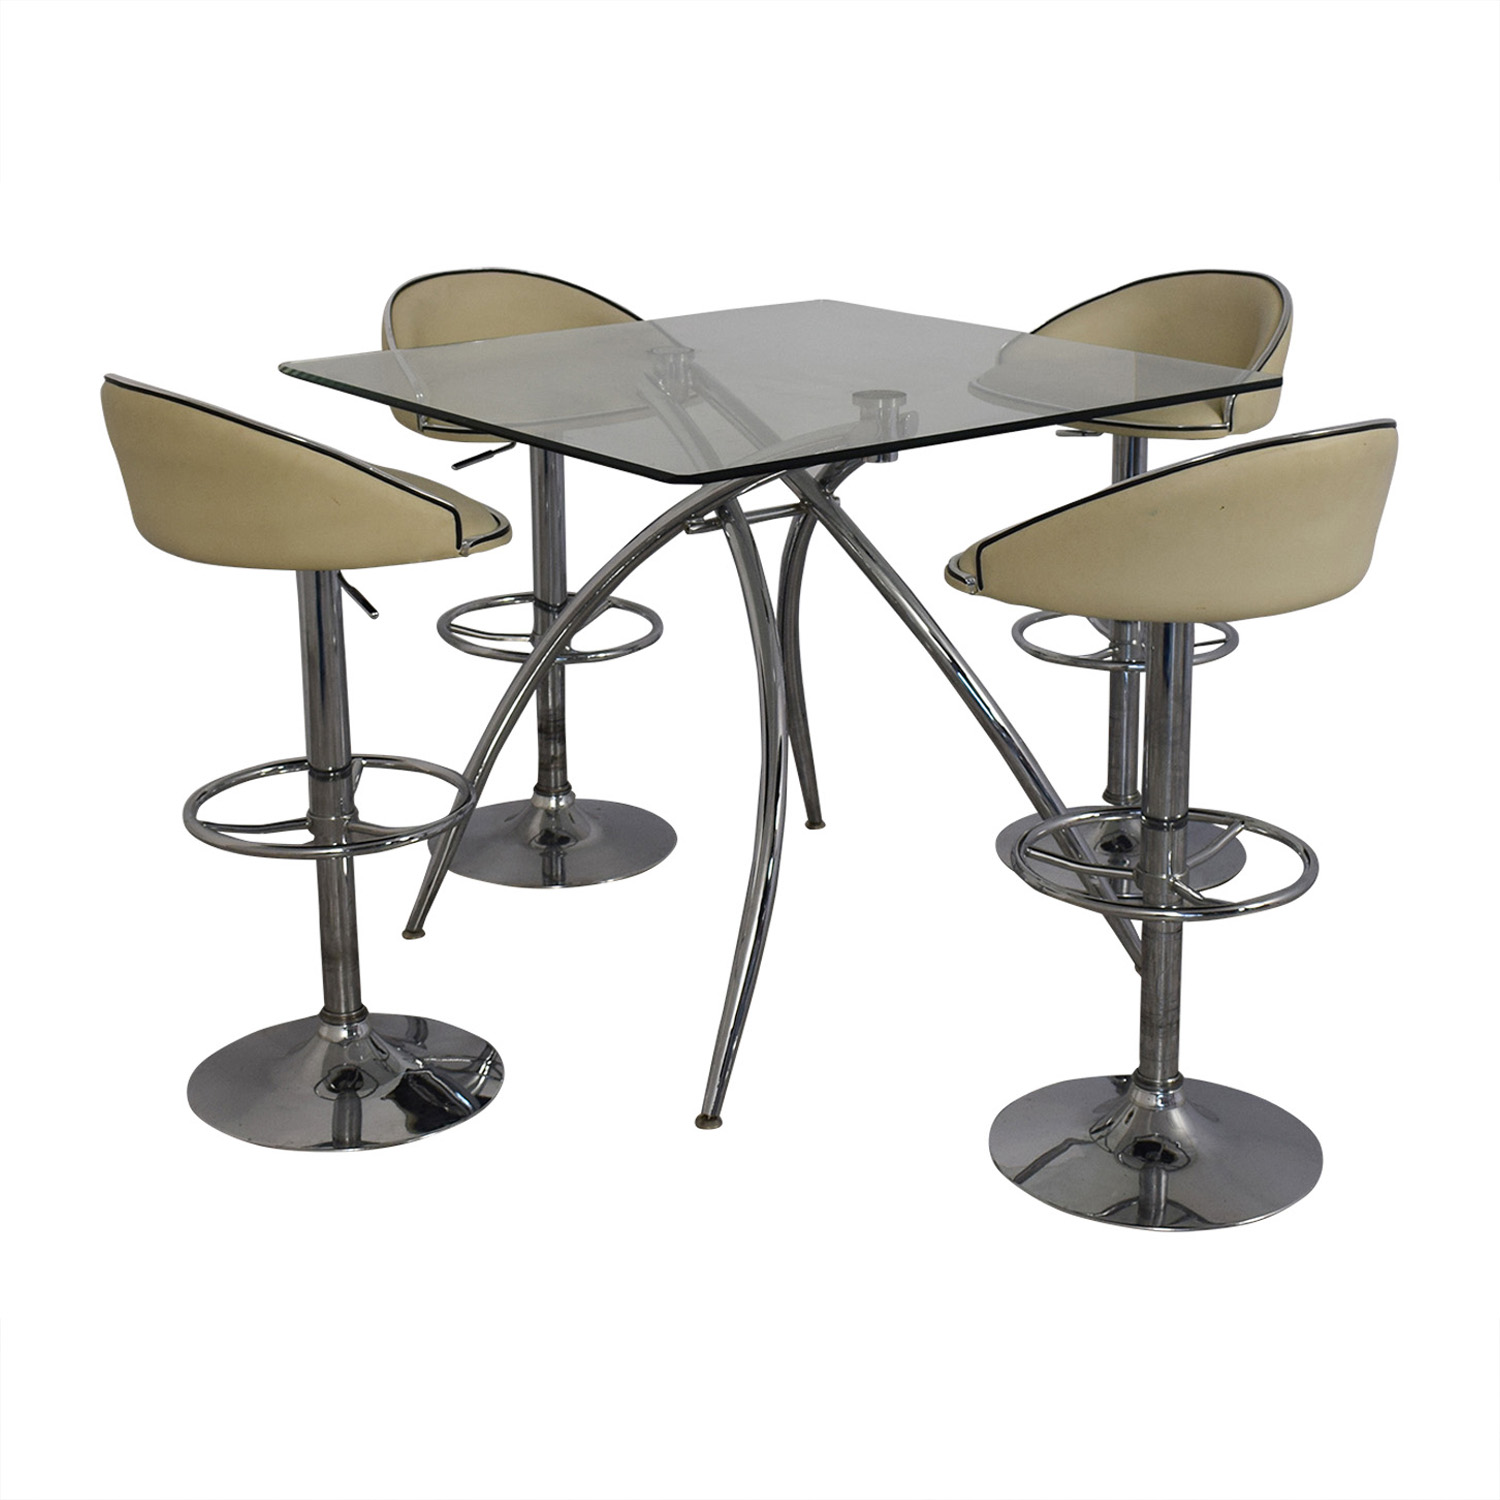 buy Chintaly Imports Adjustable Bar Stools and Glass Table Set Chintaly Imports